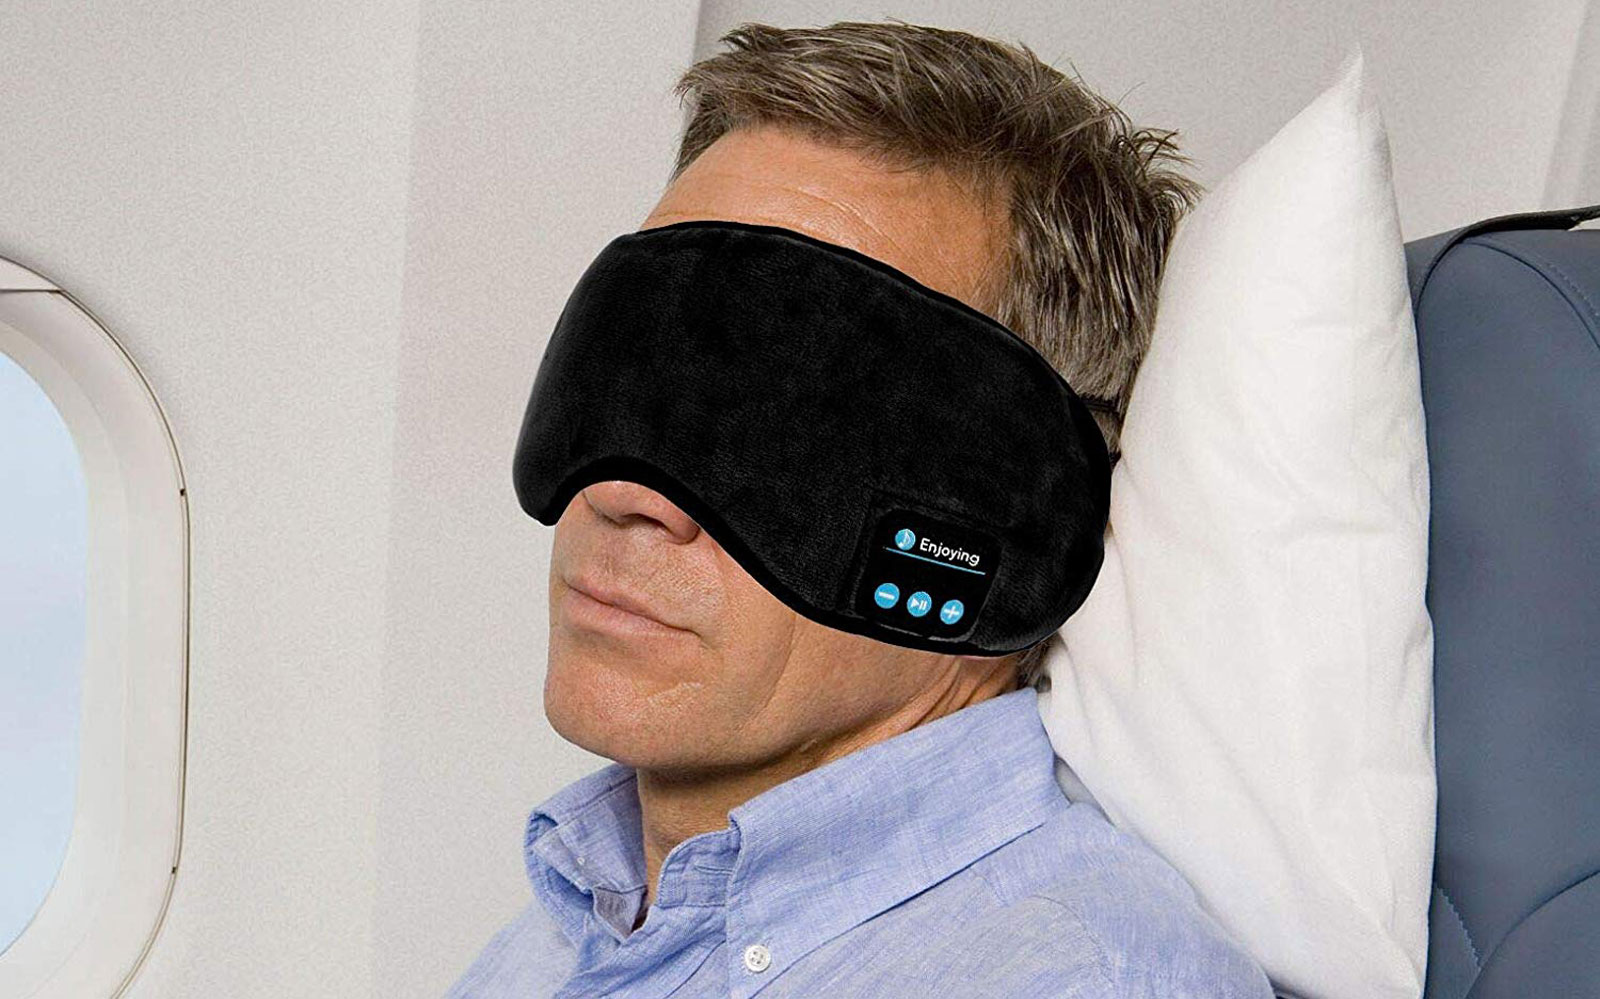 This sleep mask and headphones combination makes sleeping while traveling much easier